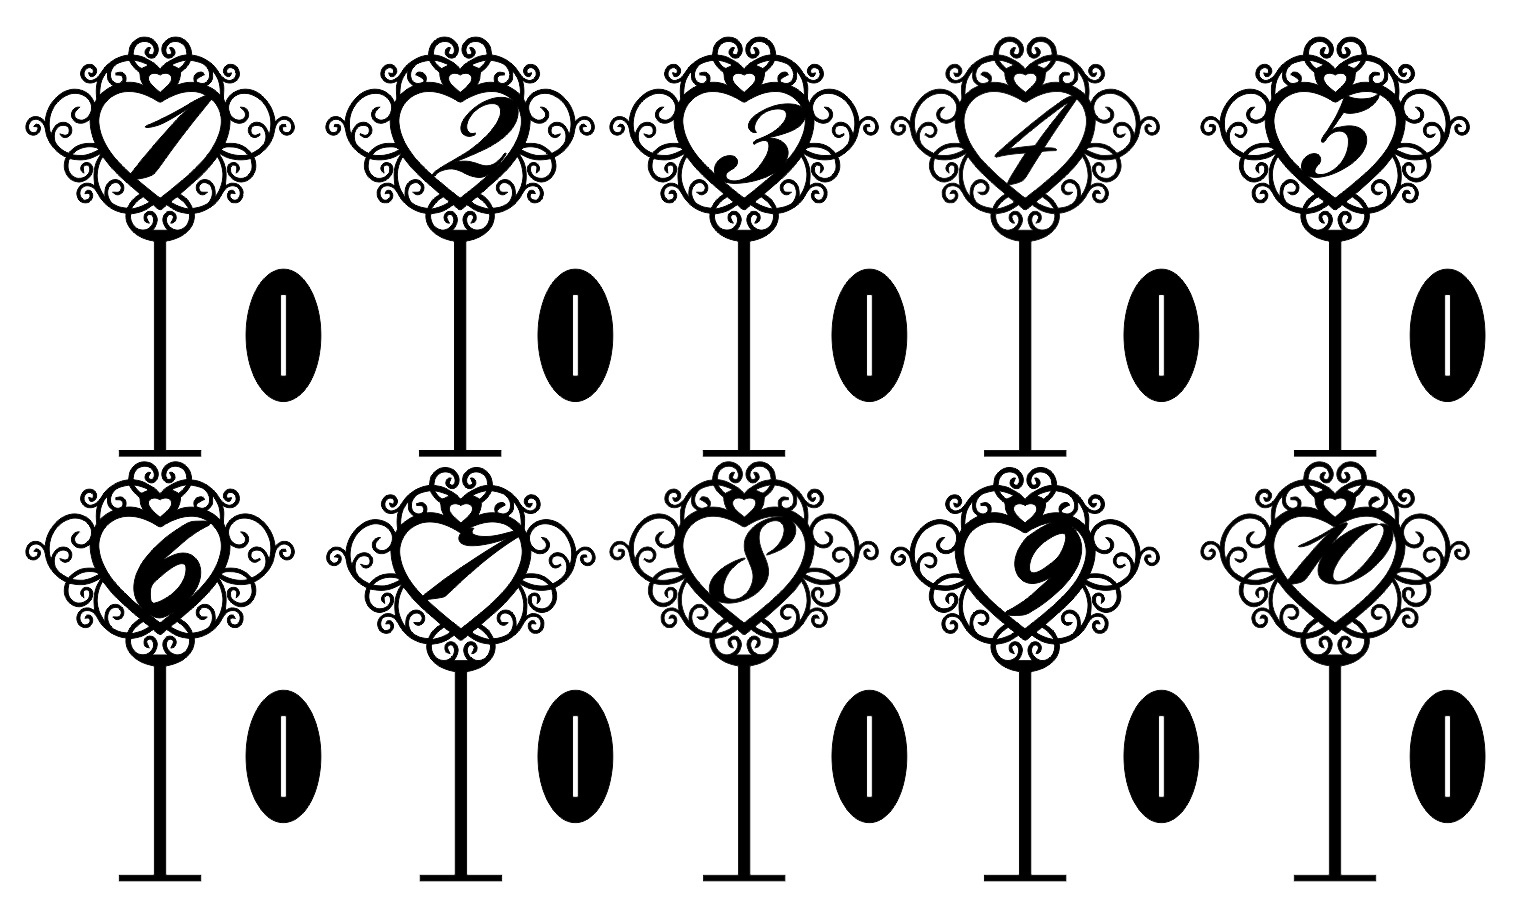 Laser Cut Freestanding Table Stand Numbers 3d Puzzle Free CDR Vectors Art